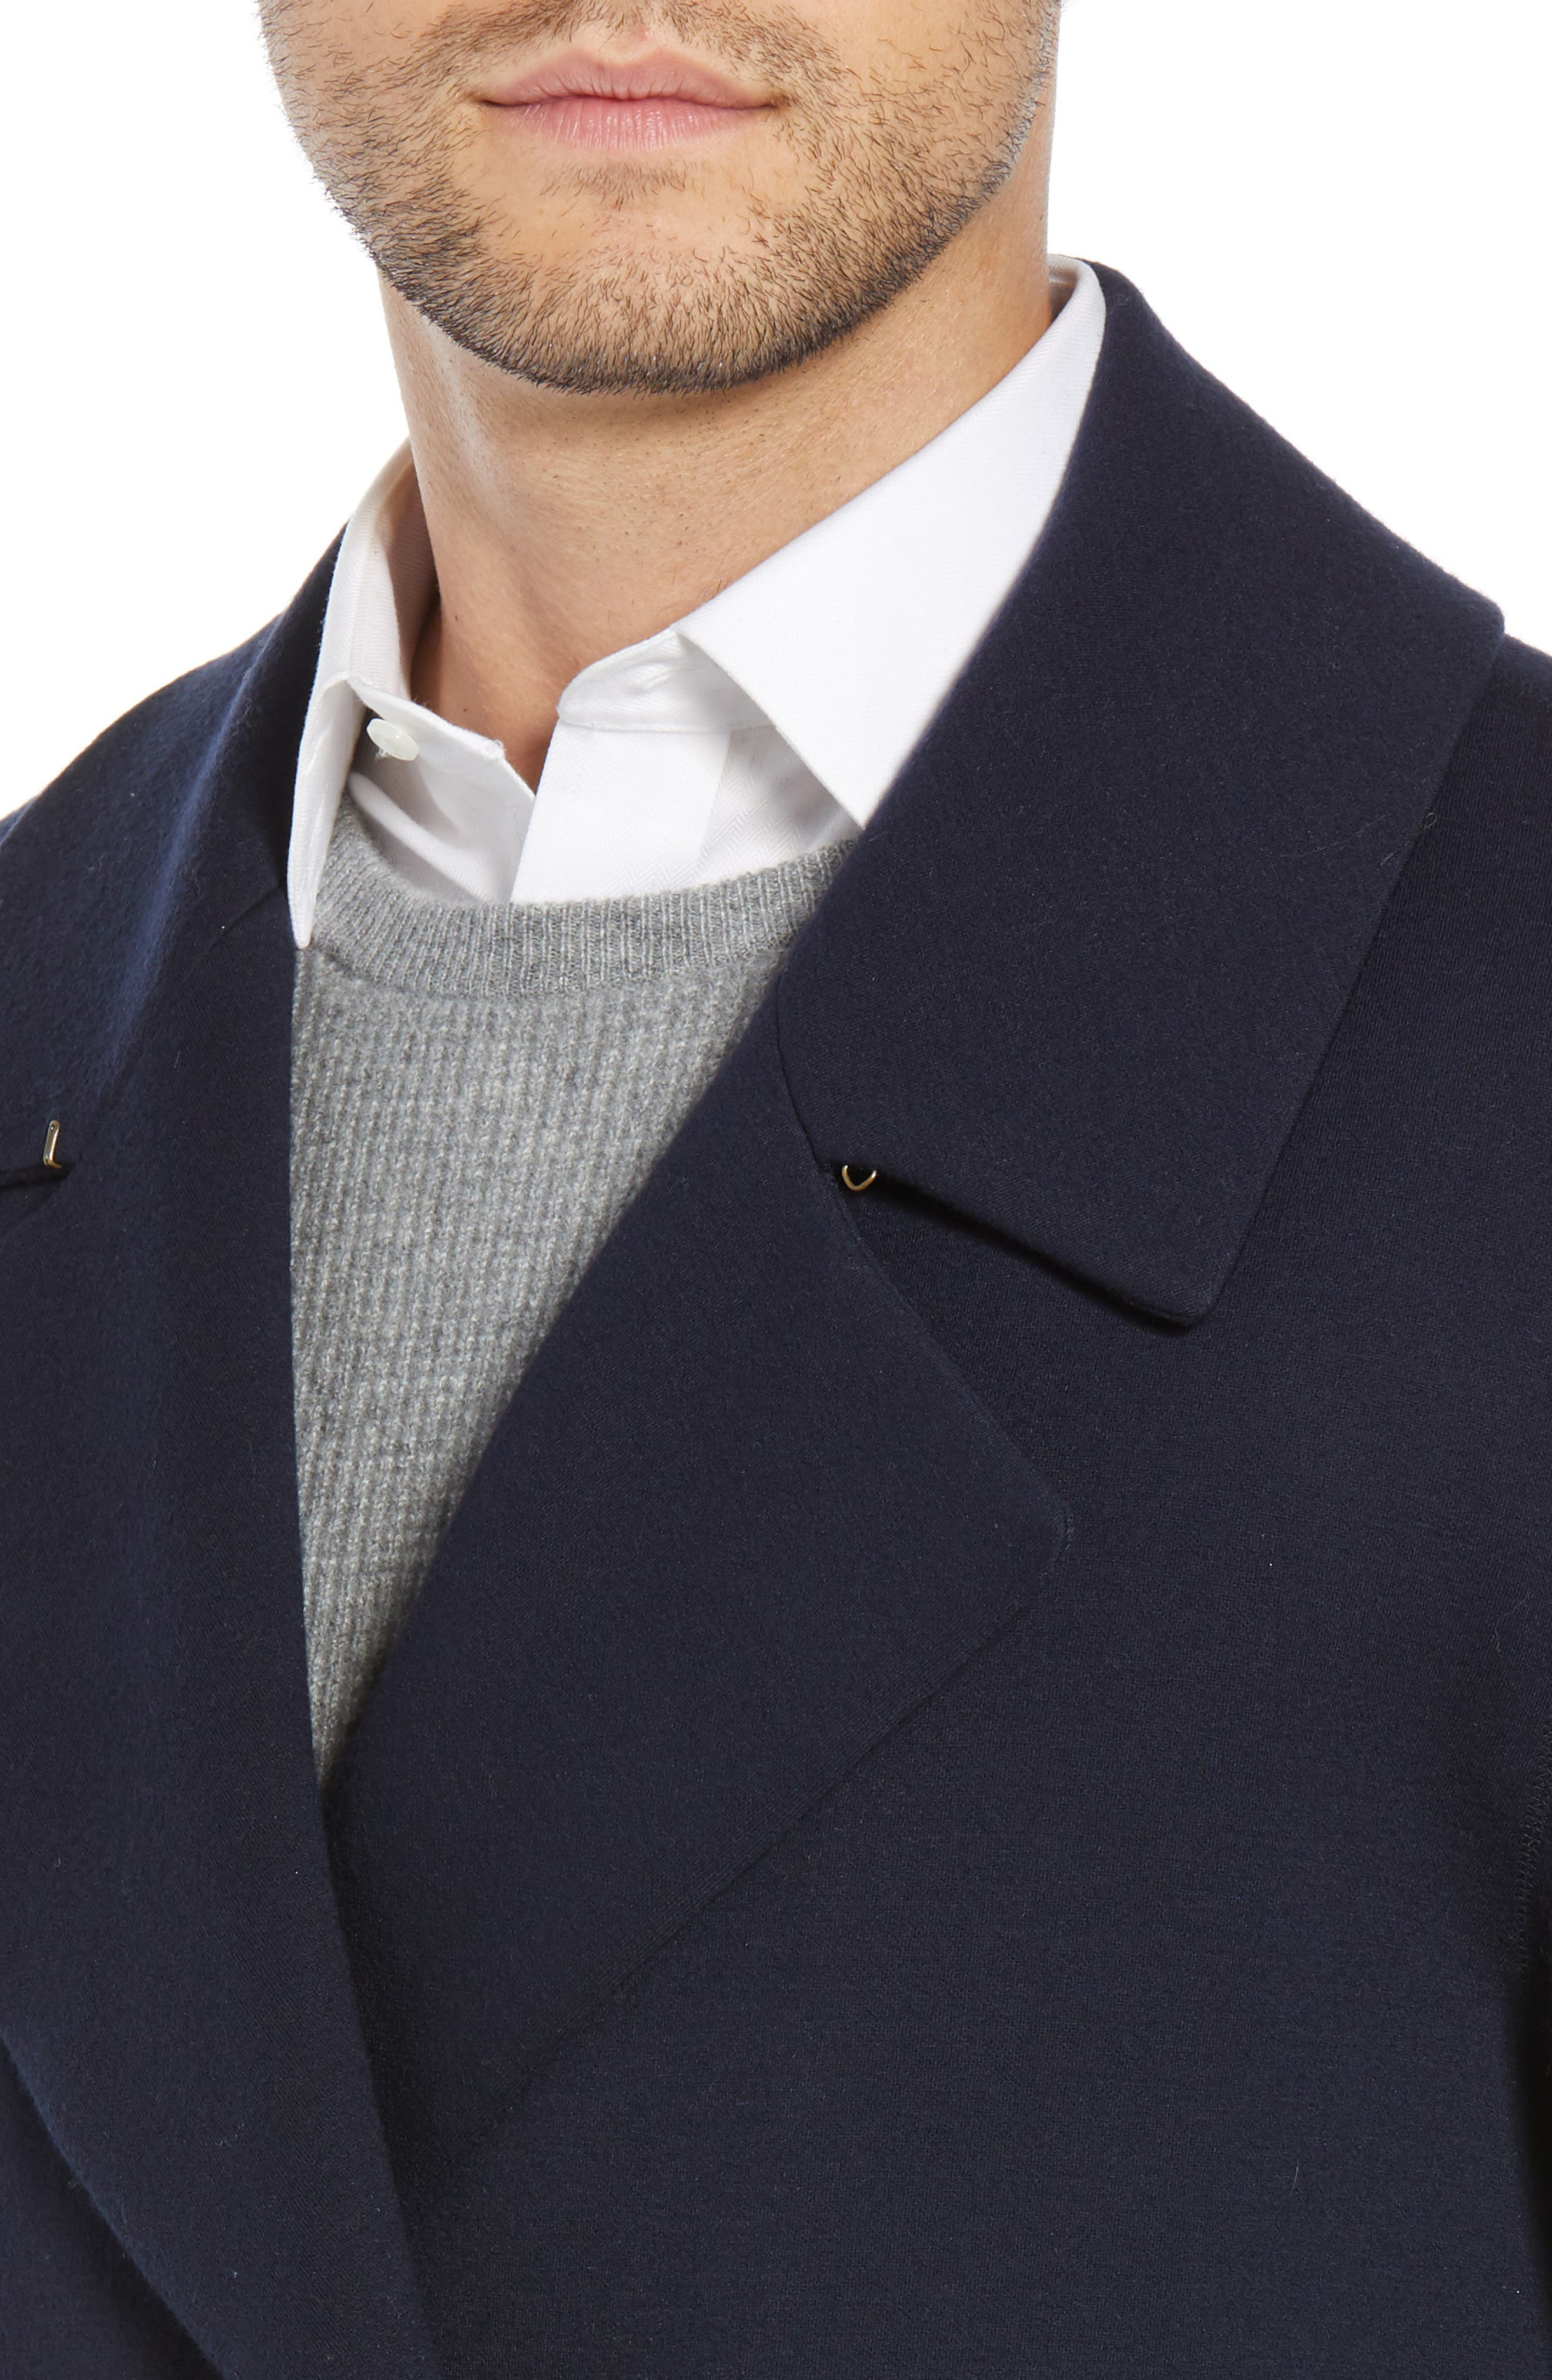 Wool Blend Chesterfield Coat,                             Alternate thumbnail 4, color,                             MIDNIGHT